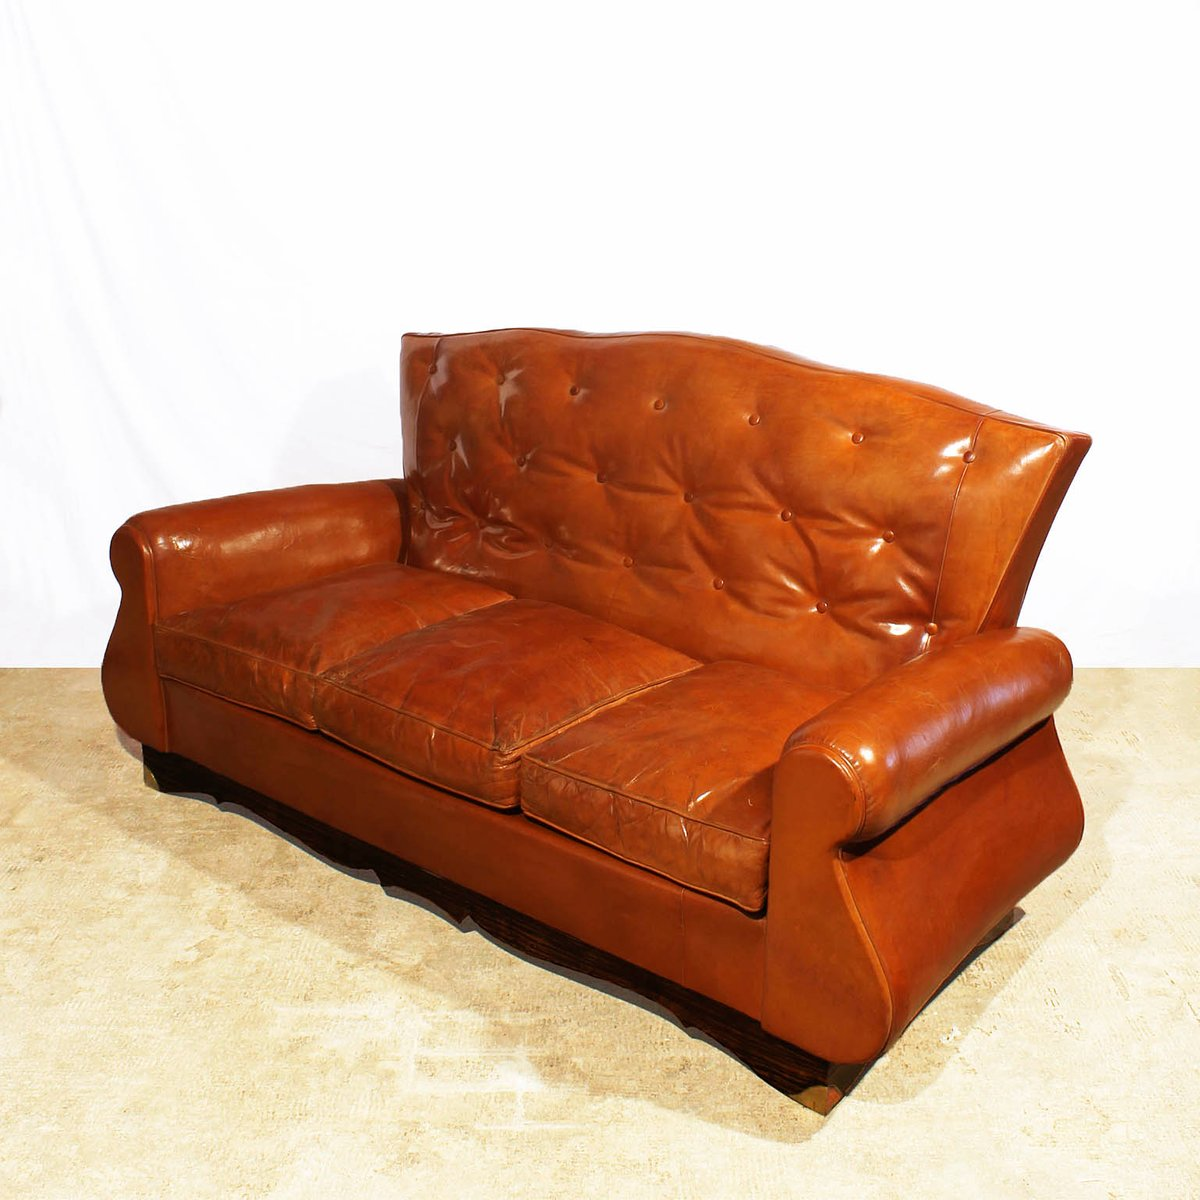 Chesterfield Style Sofa, 1940s for sale at Pamono